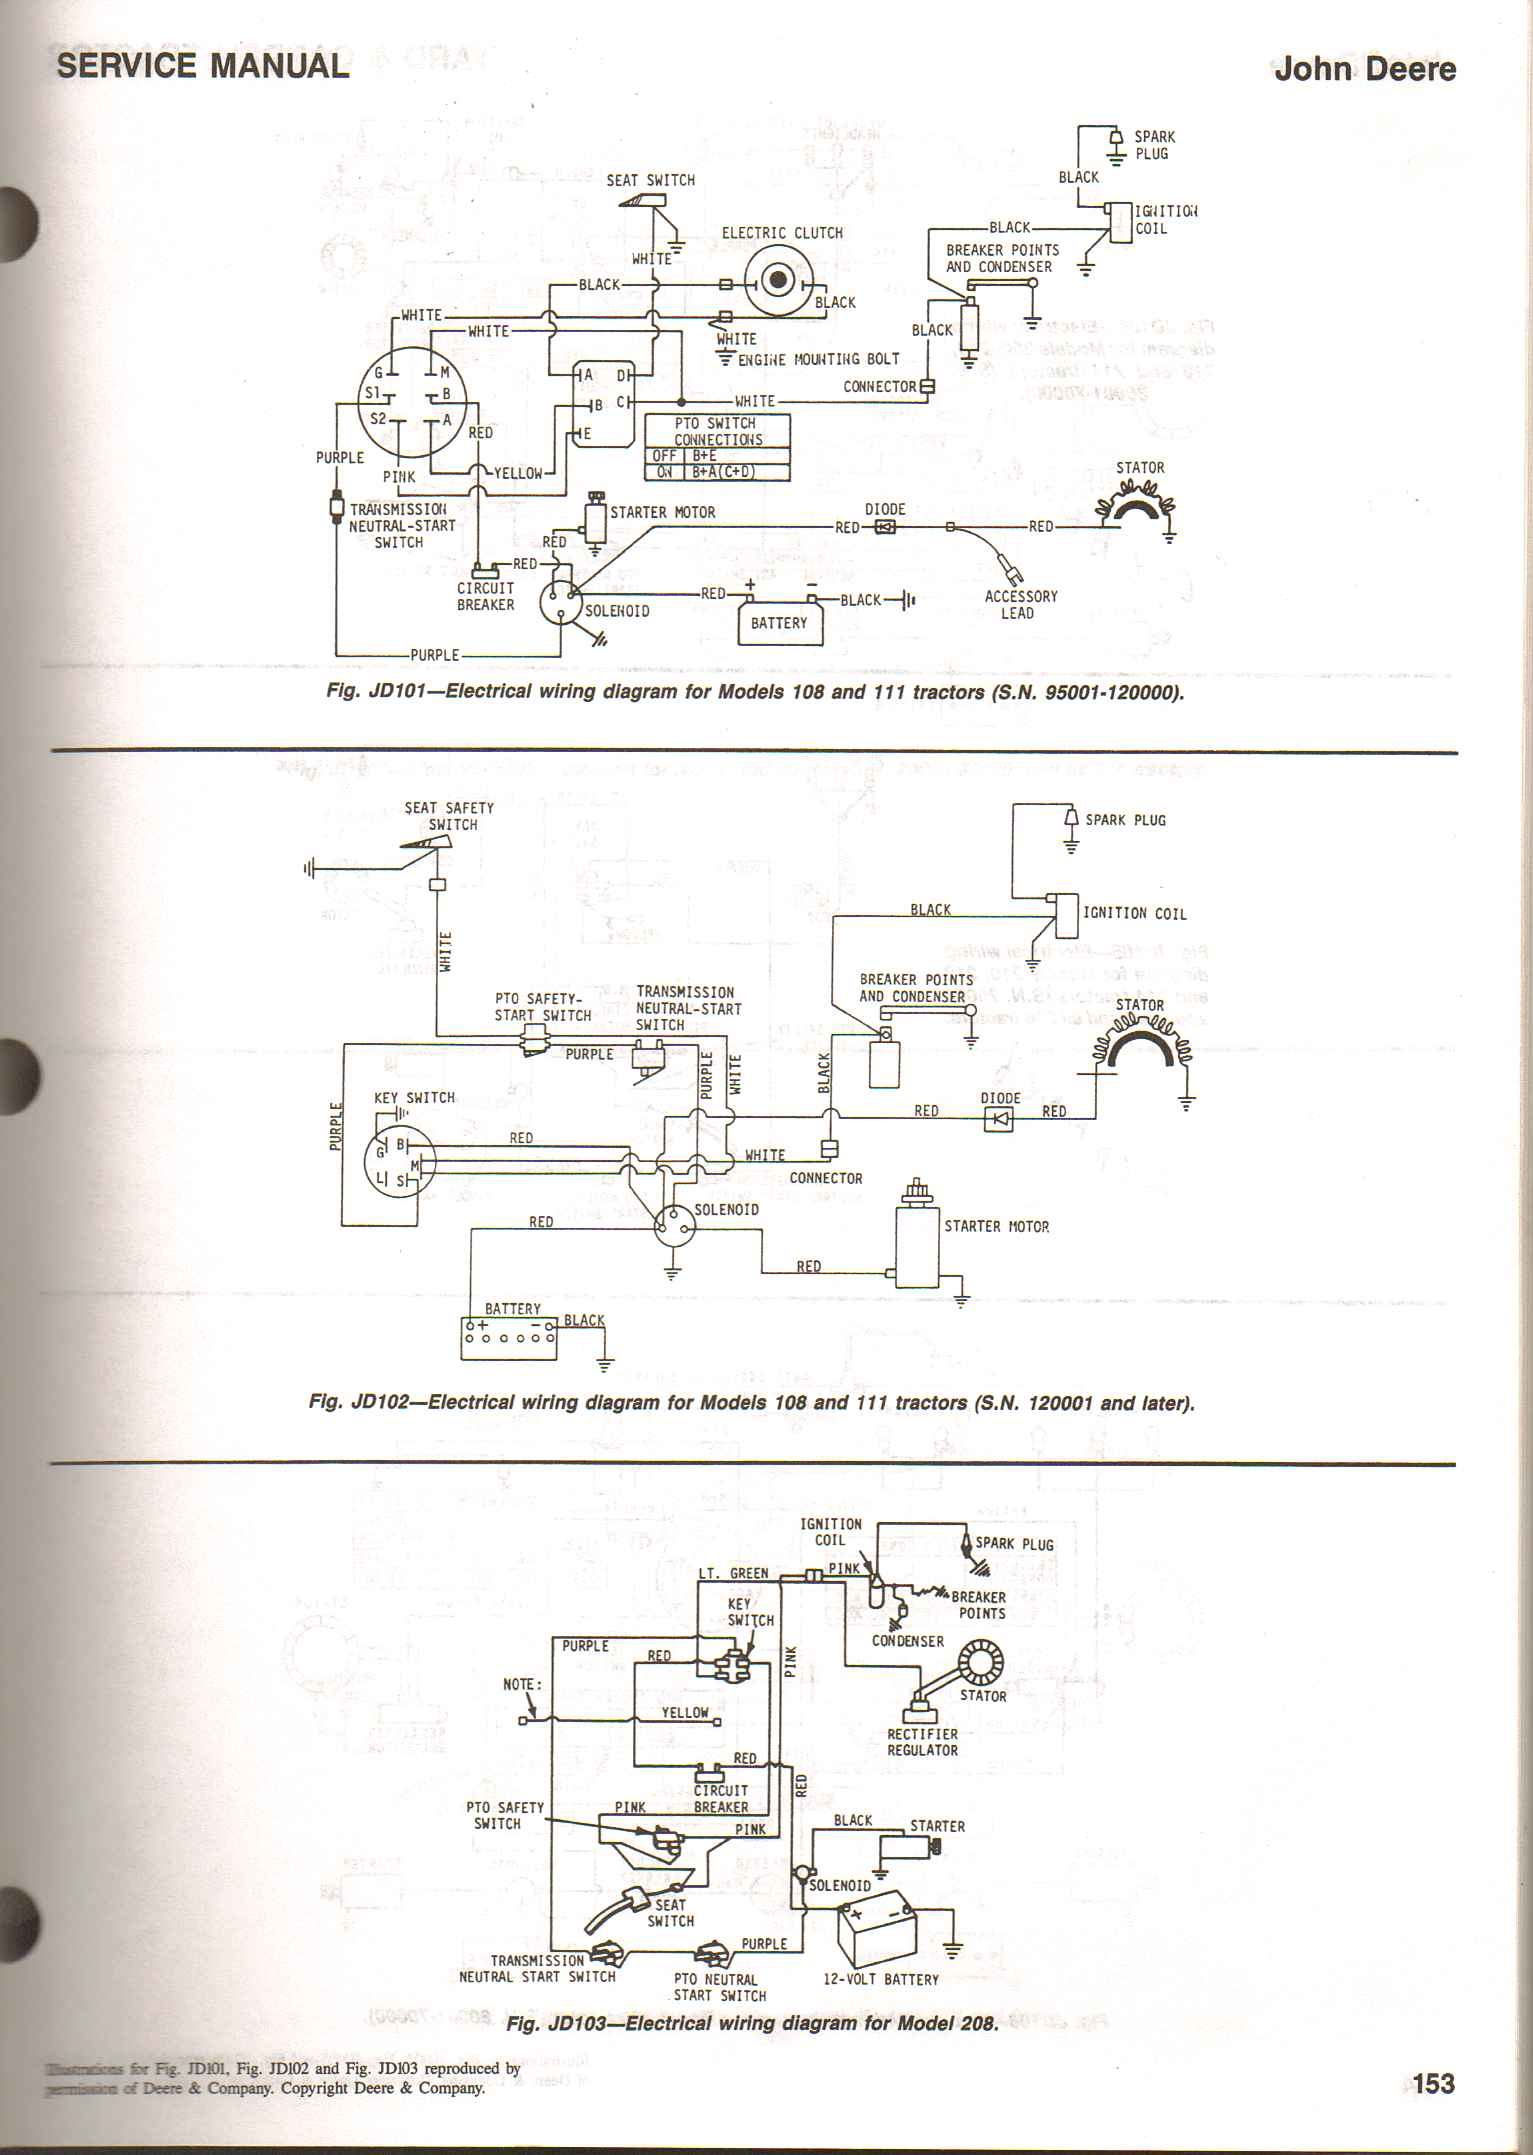 Briggs And Stratton 4 Pole Starter Solenoid Wiring Diagram from schematron.org